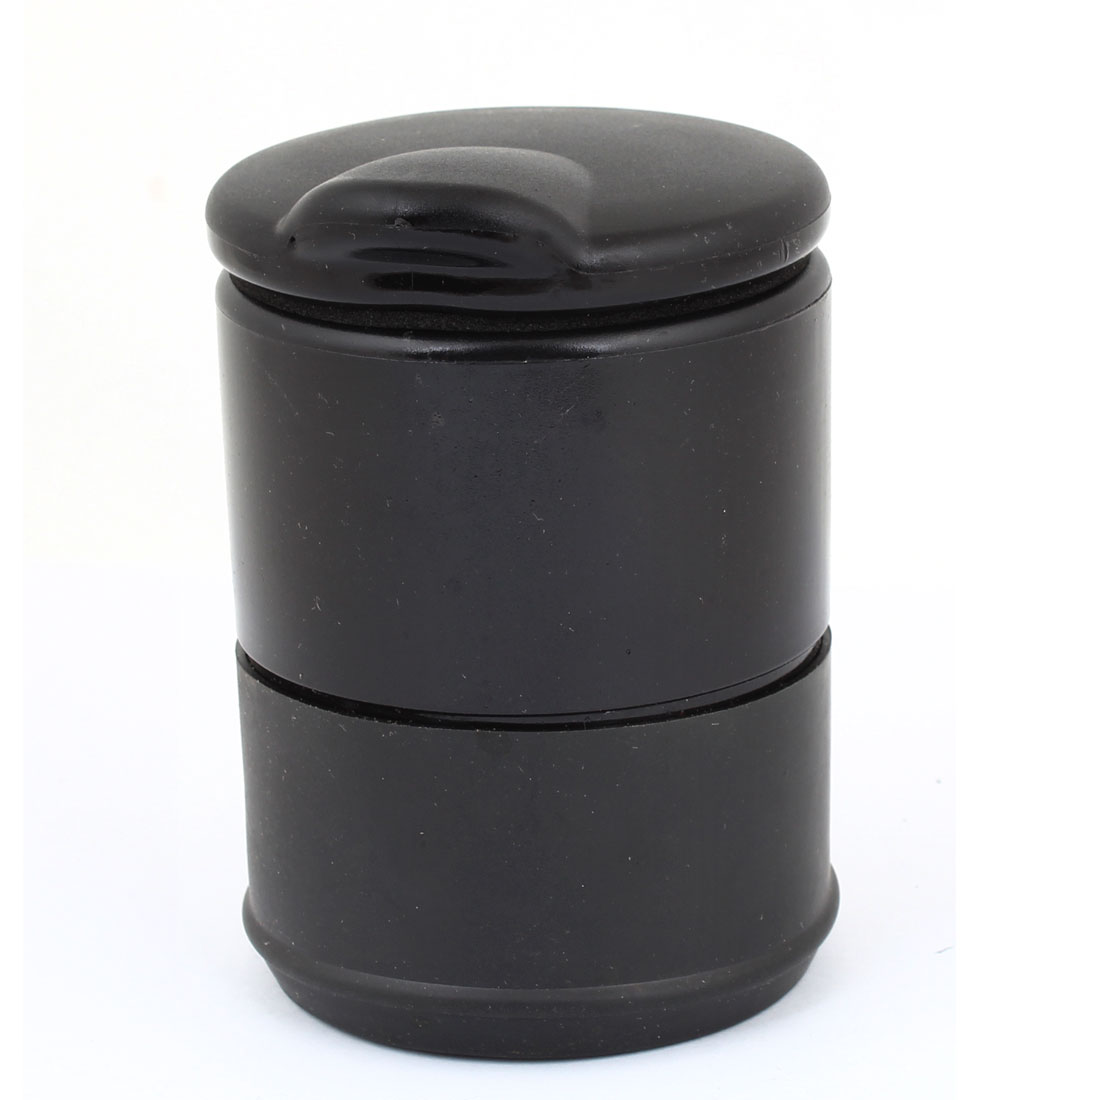 Portable Plastic Shell Cylinder Shaped Ashtray for Car, Black